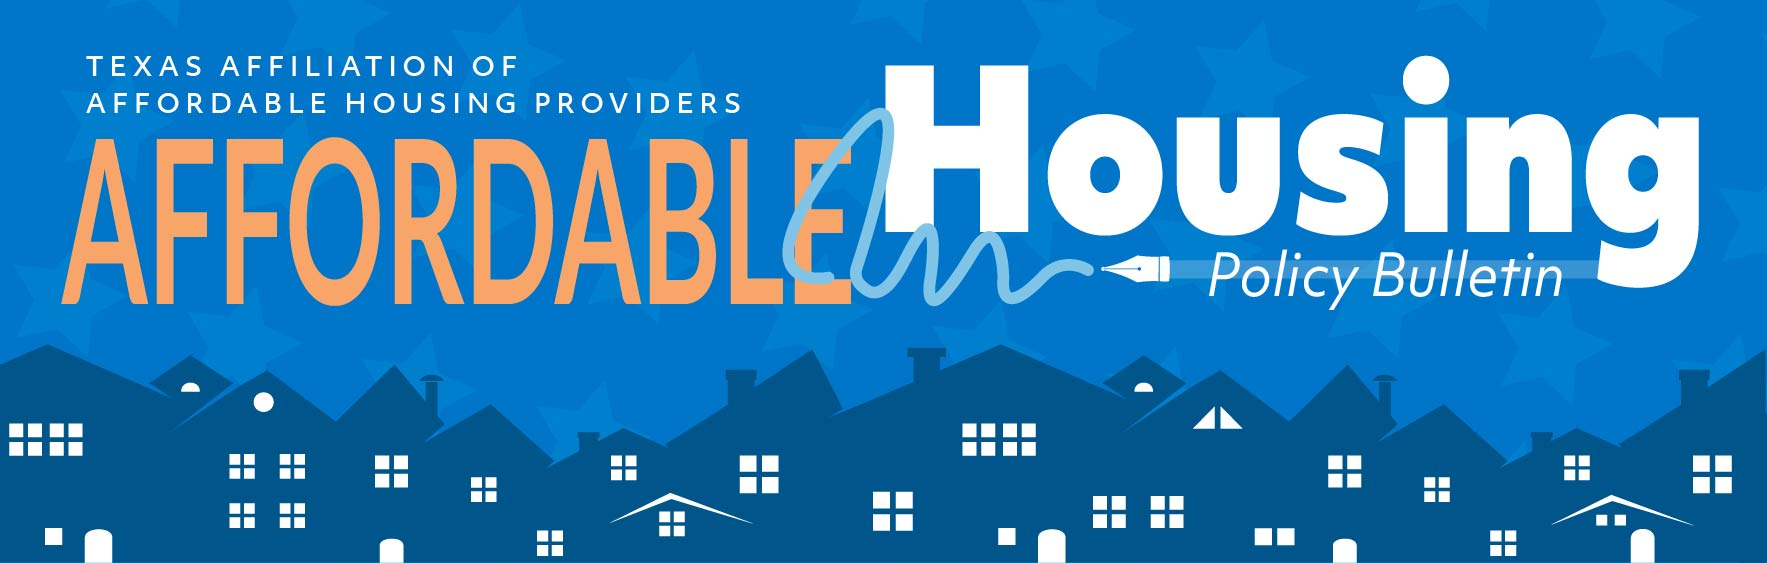 Affordable Housing Policy Bulletin